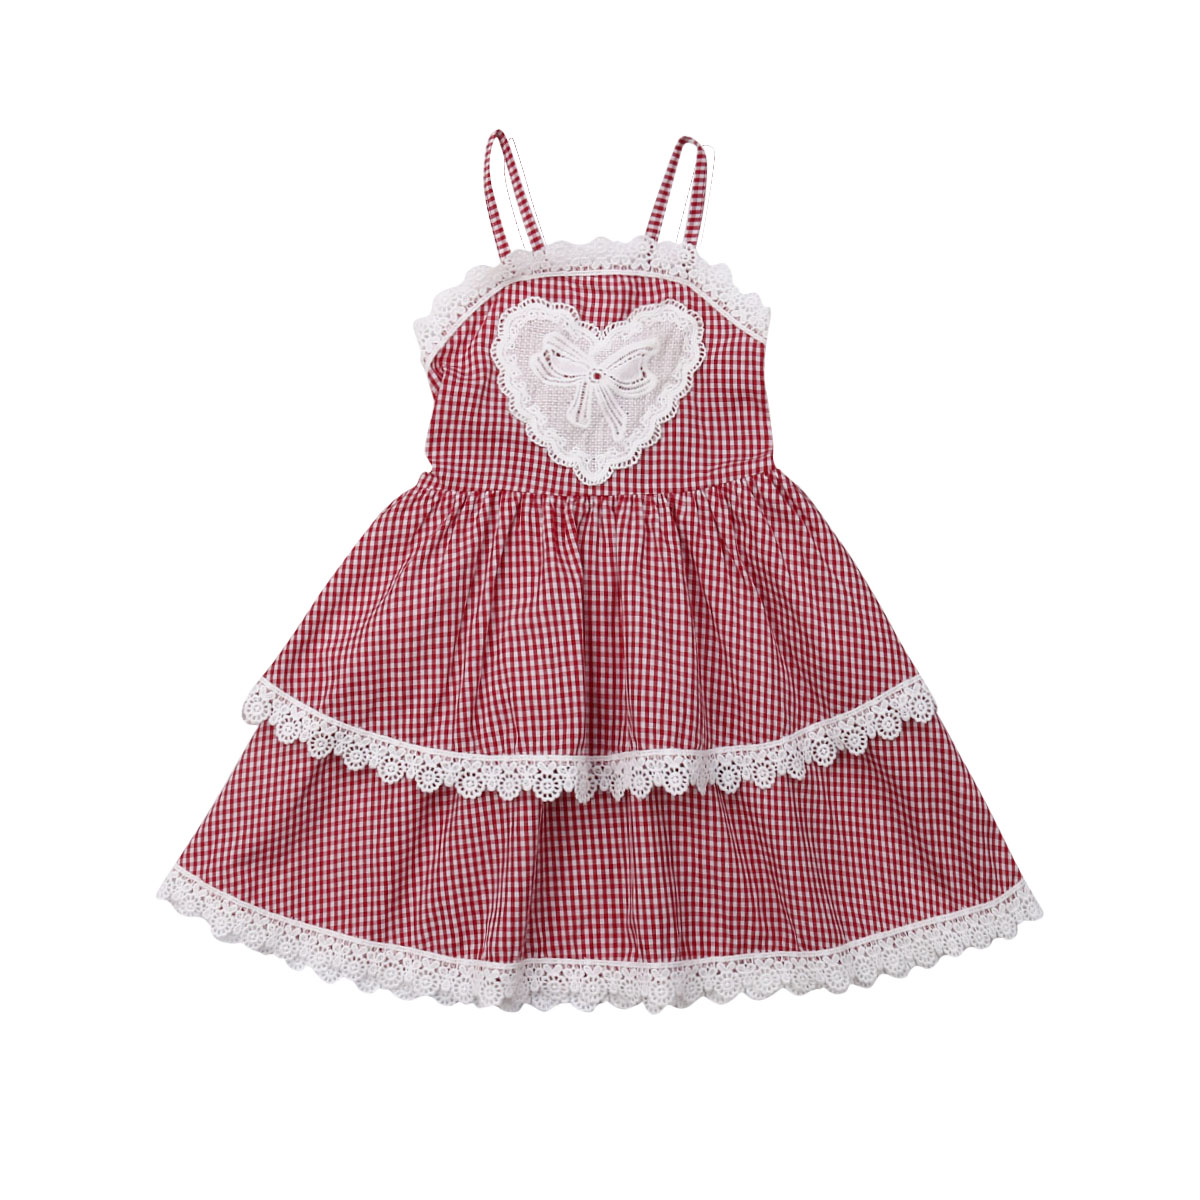 Toddler Infant Girls Plaids Dress Princess Party Dresses Baby Summer 2019 Spaghetti Straps Sleeveless A-line Sundress Dress